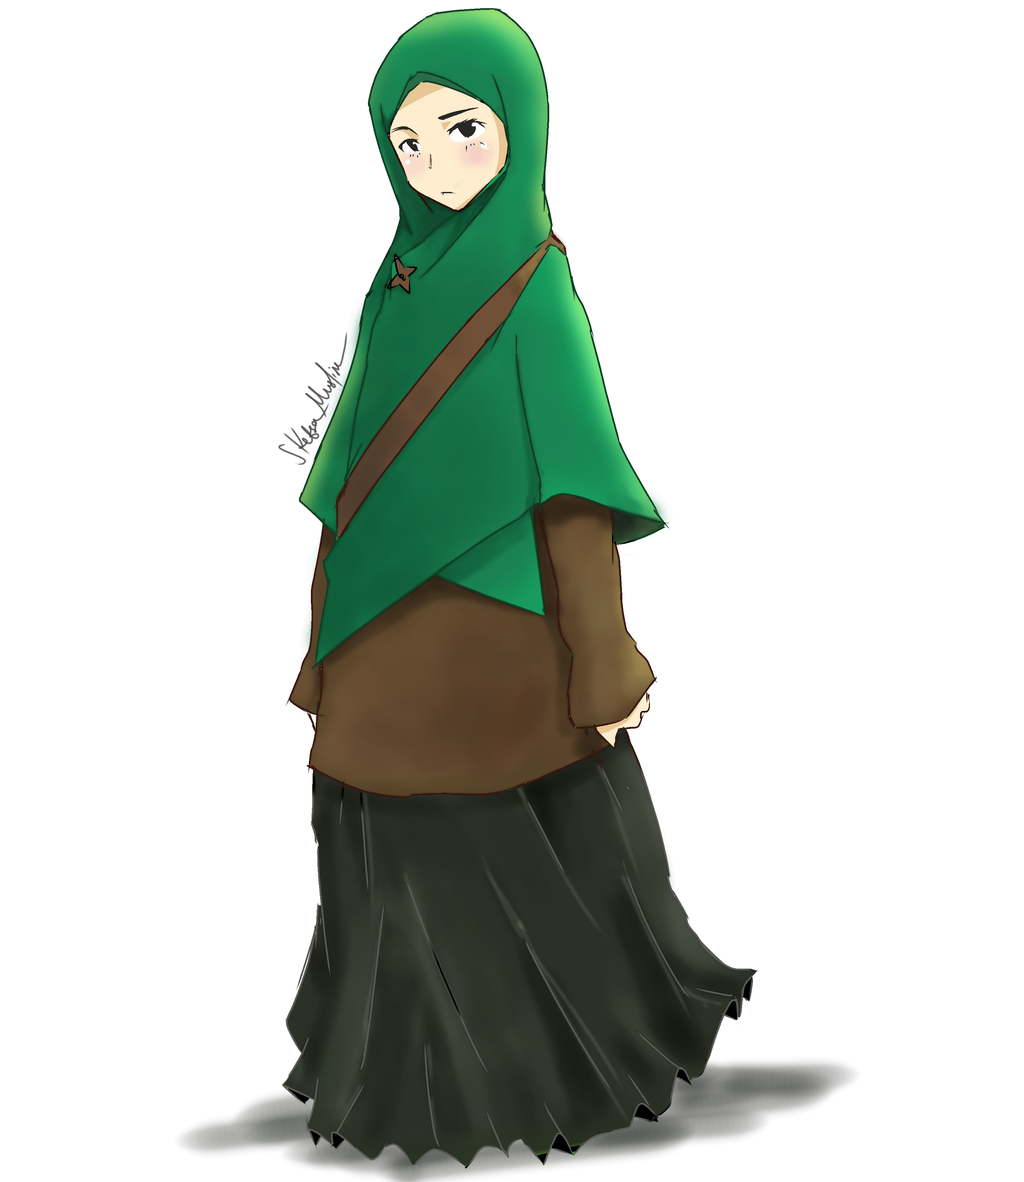 Anime Girl Wearing Hijab With The Green By Sketsamuslim On Deviantart